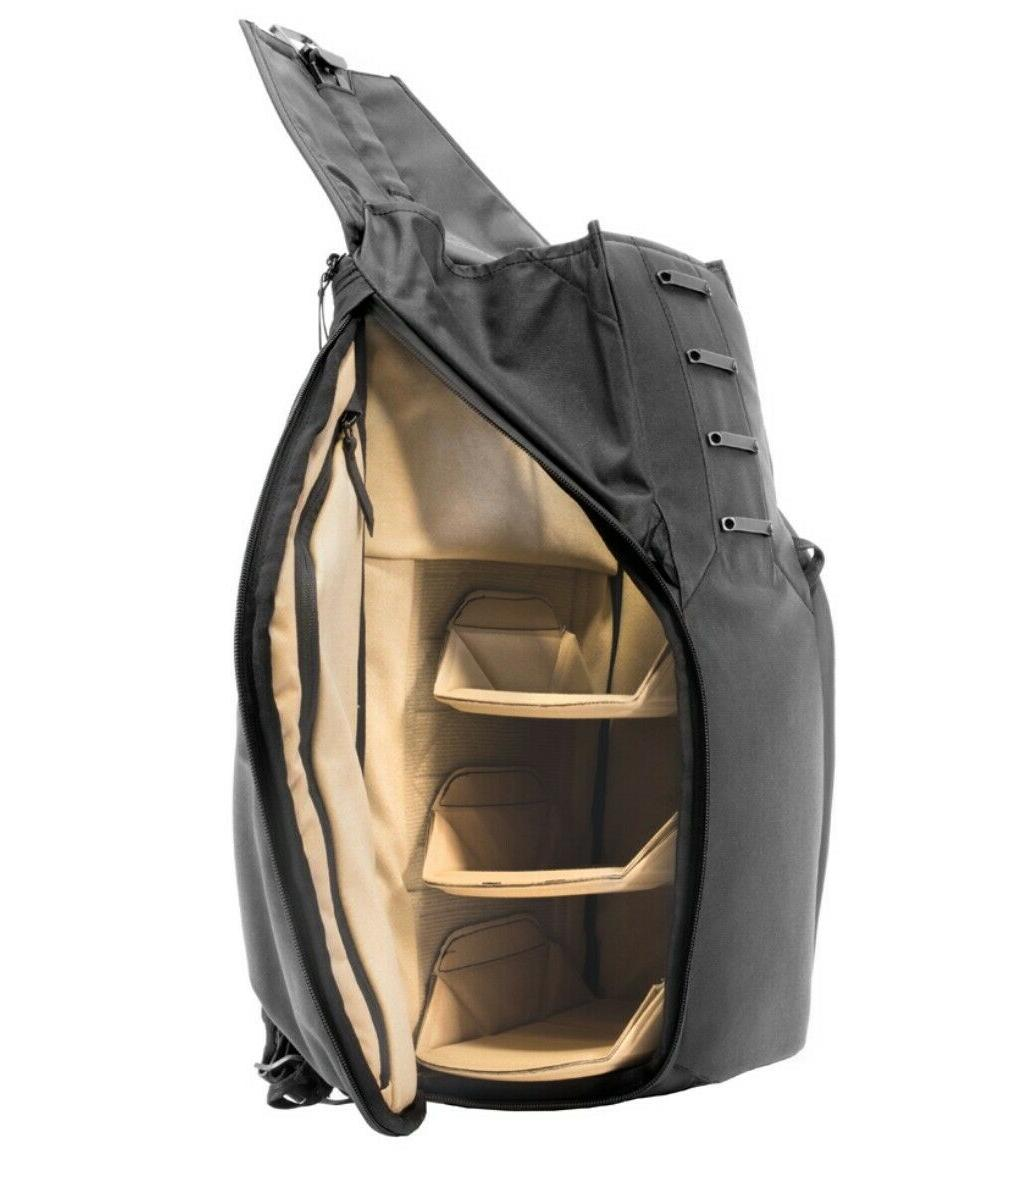 Peak Design 20L - New with Tags